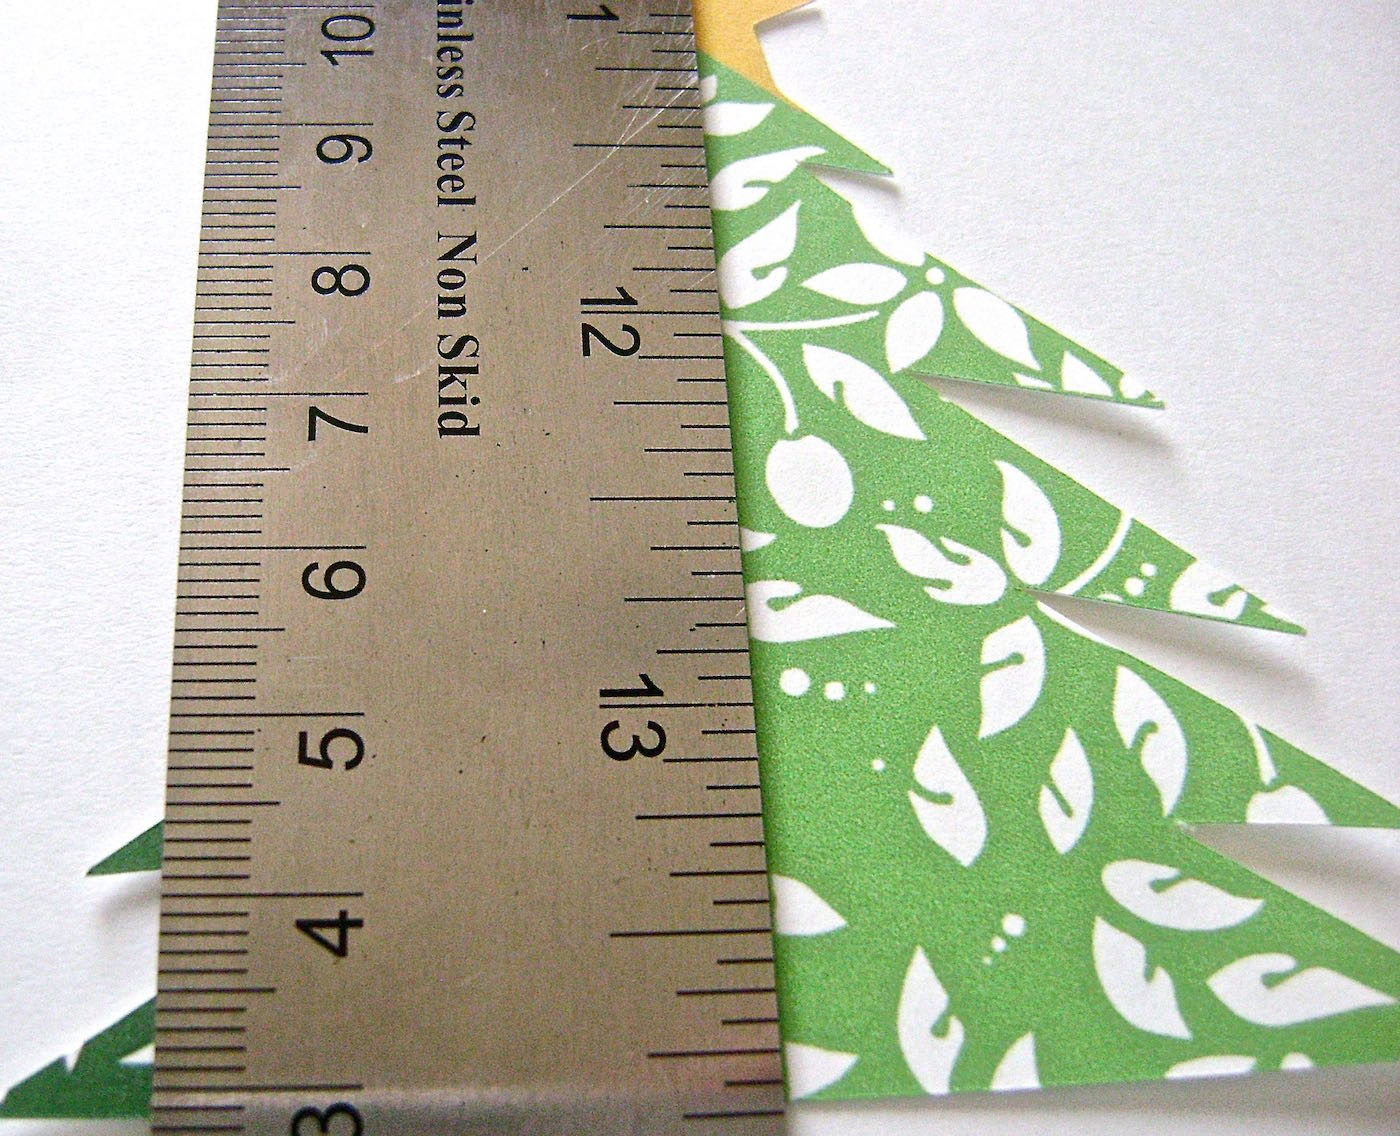 step 2 - Place a sharp edge ruler in the center of each tree.